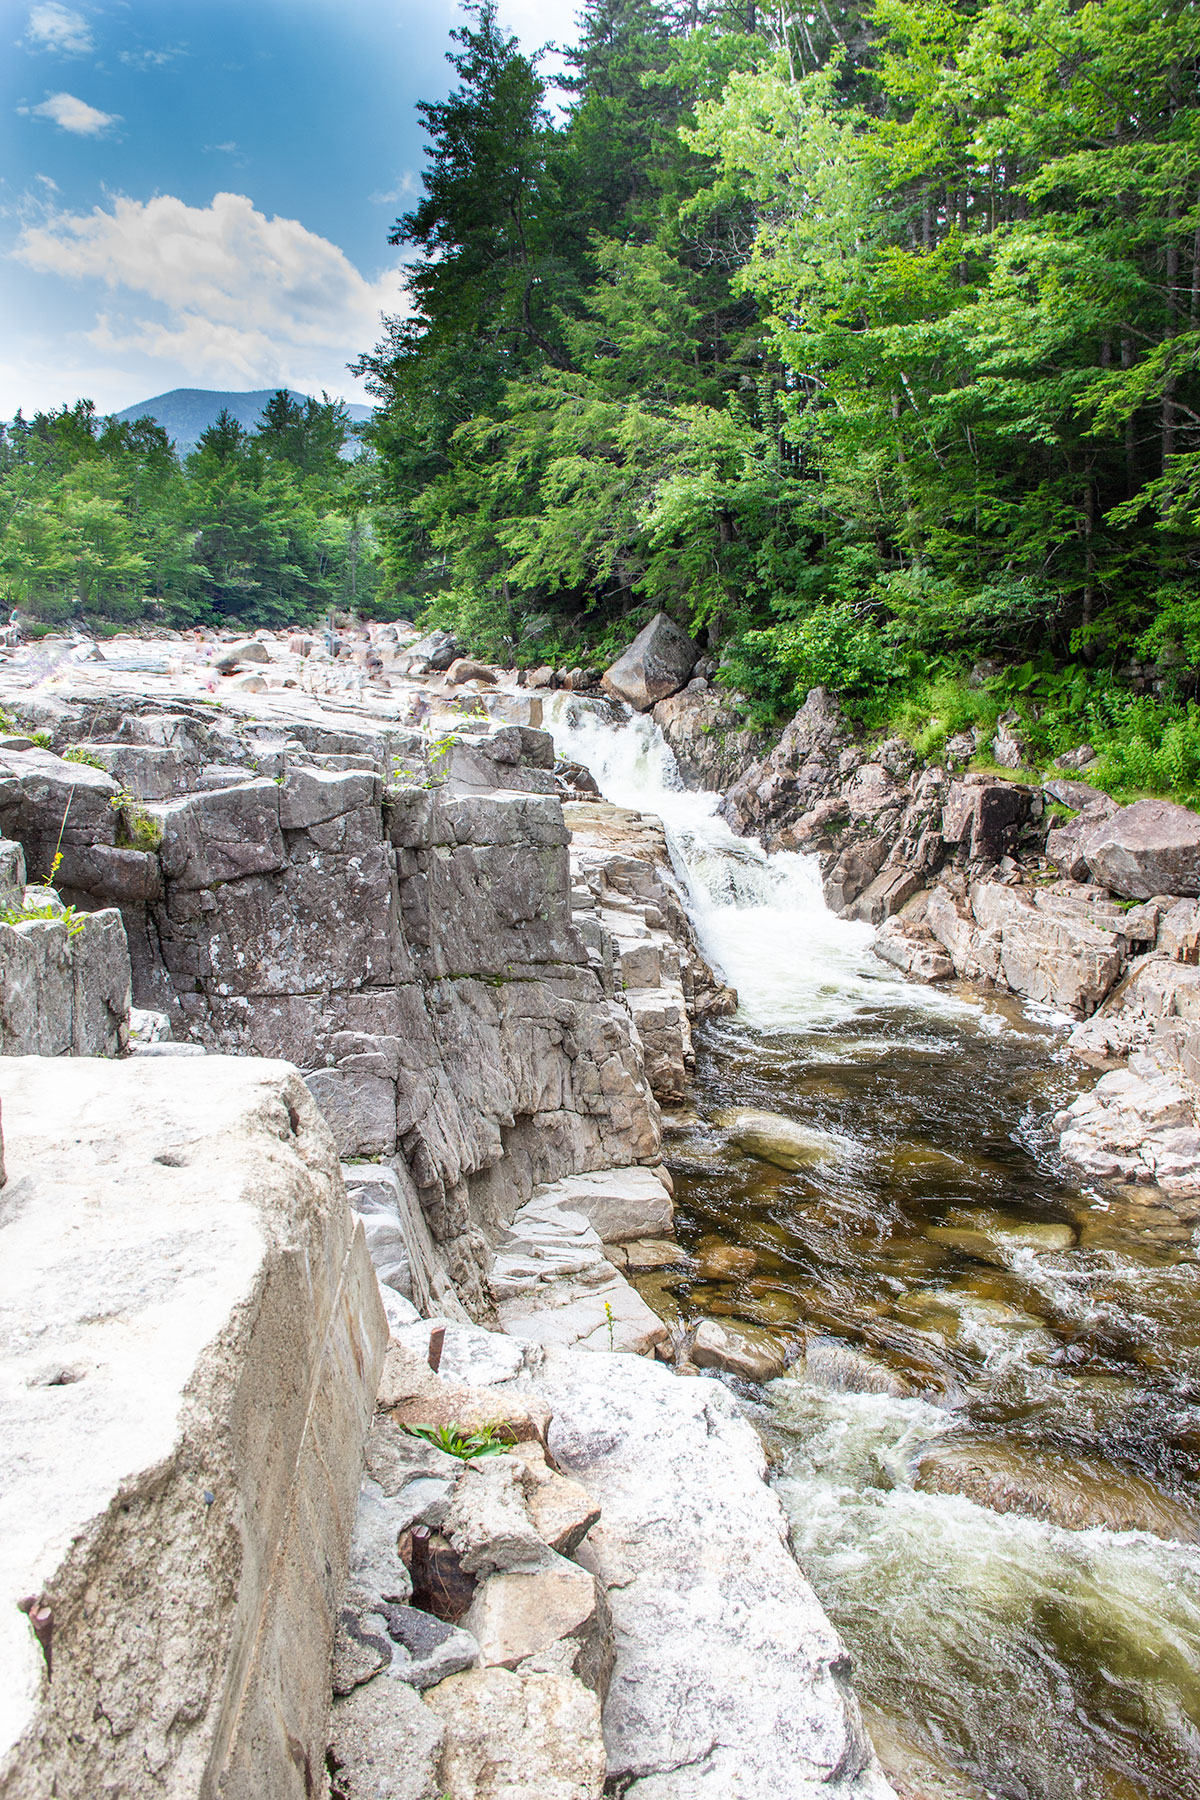 Rocky-Gorge-and-Falls-Pond-Trail-Kancamagus-White-Mountains